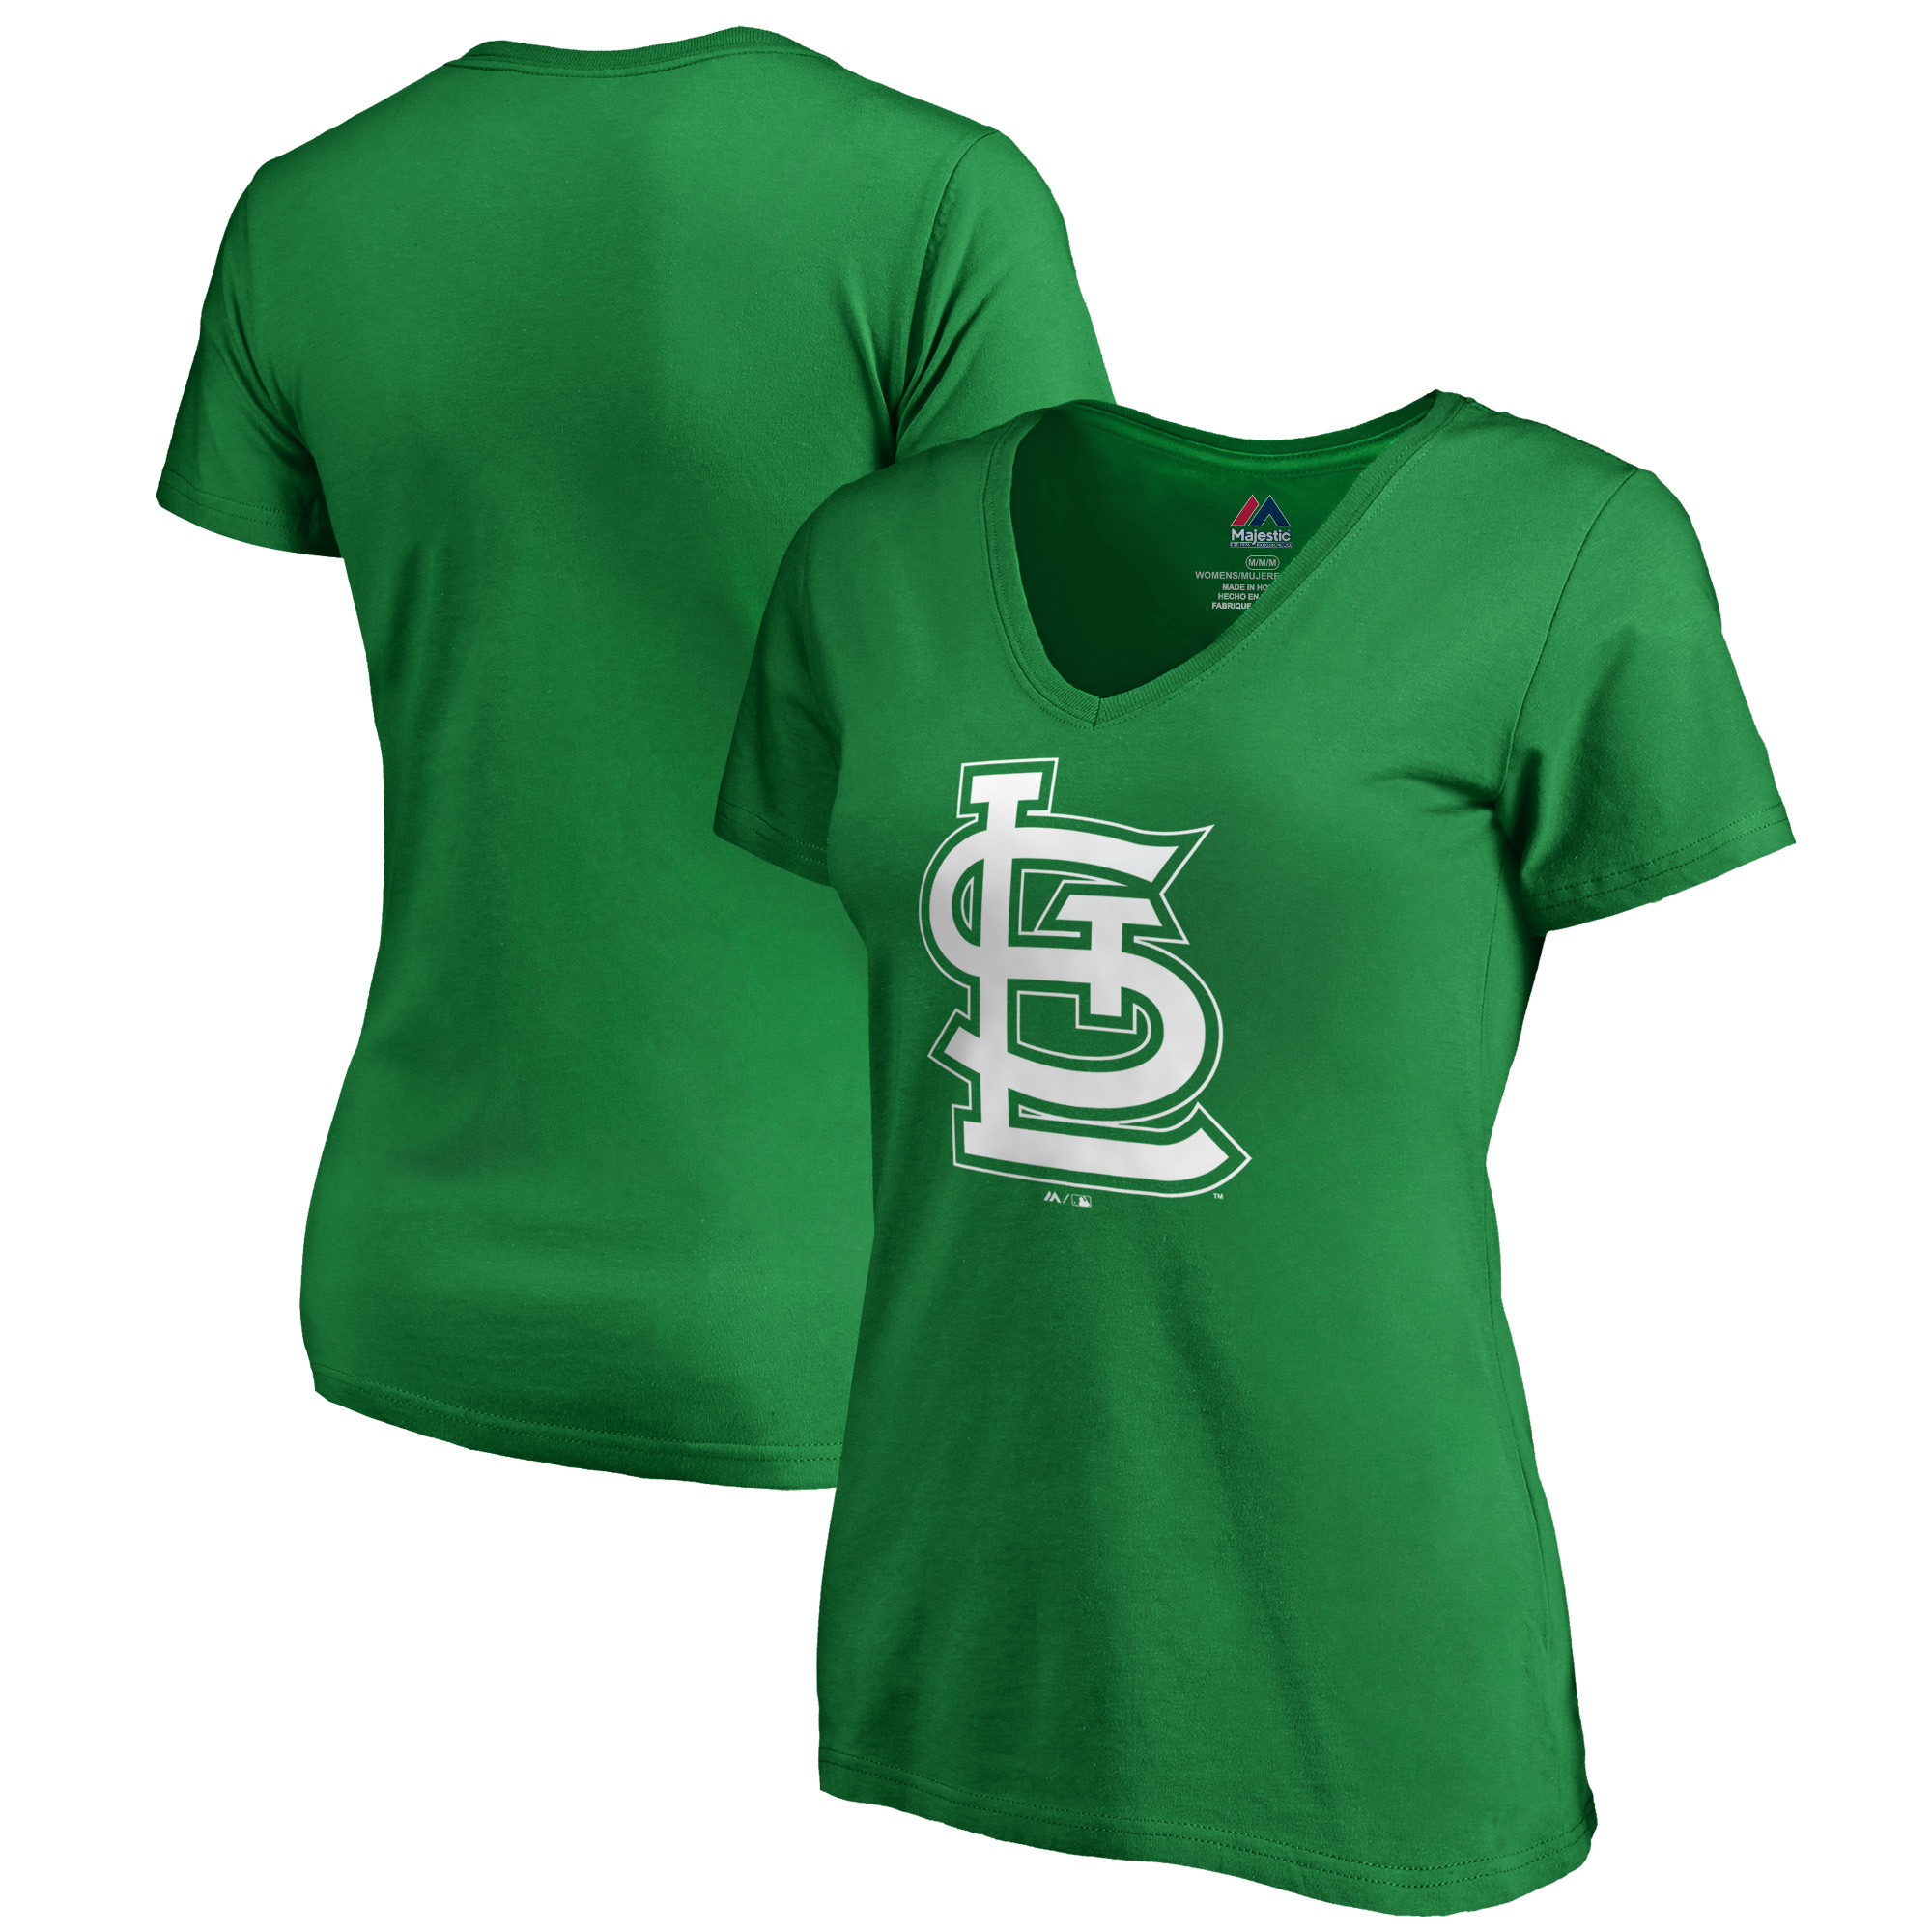 St. Louis Cardinals Majestic Women's 2019 St. Patrick's Day White Logo V-Neck T-Shirt - Kelly Green